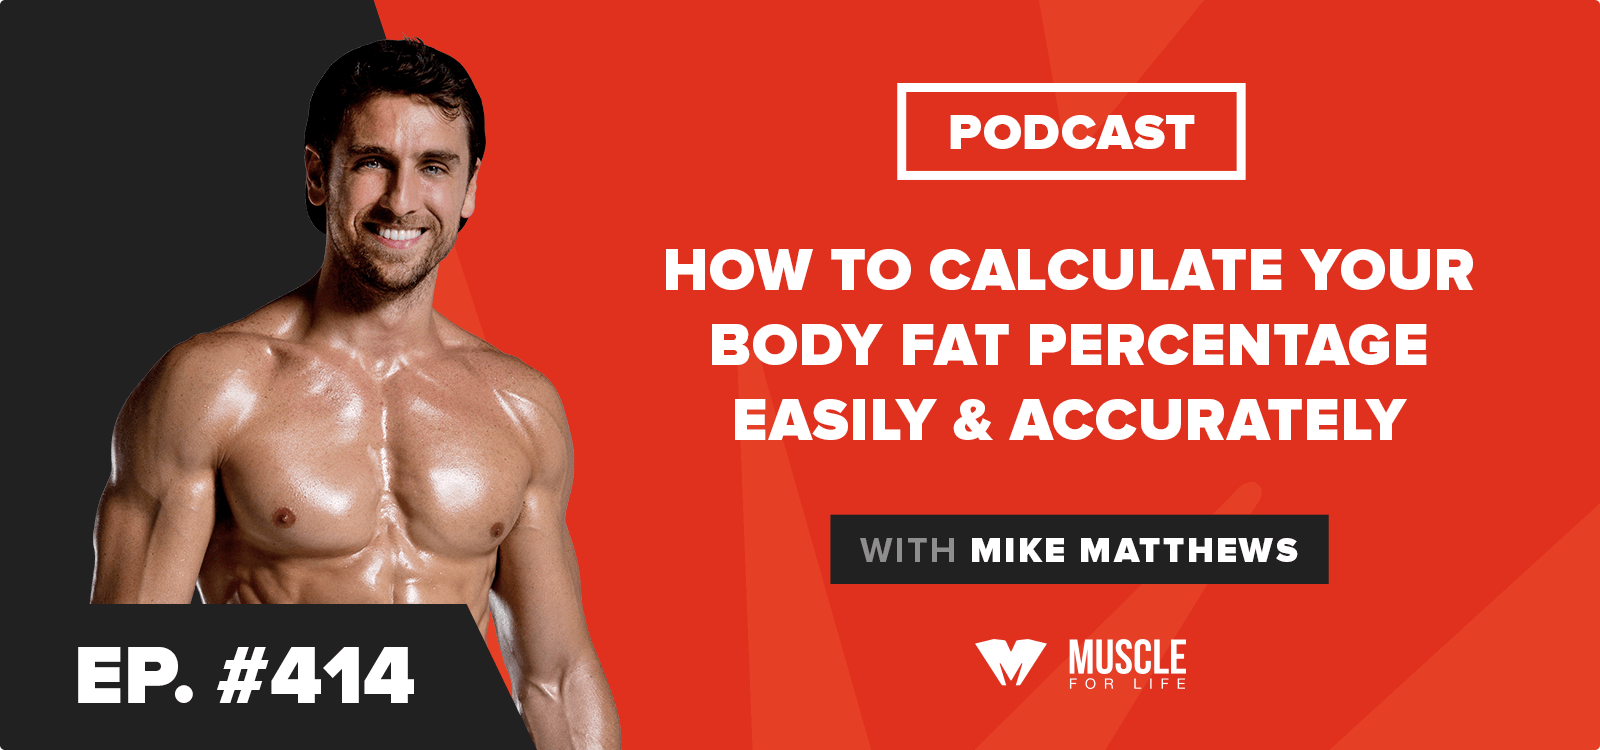 How-to-Calculate-Your-Body-Fat-Percentage-Easily-&-Accurately_blogpost_1600x750